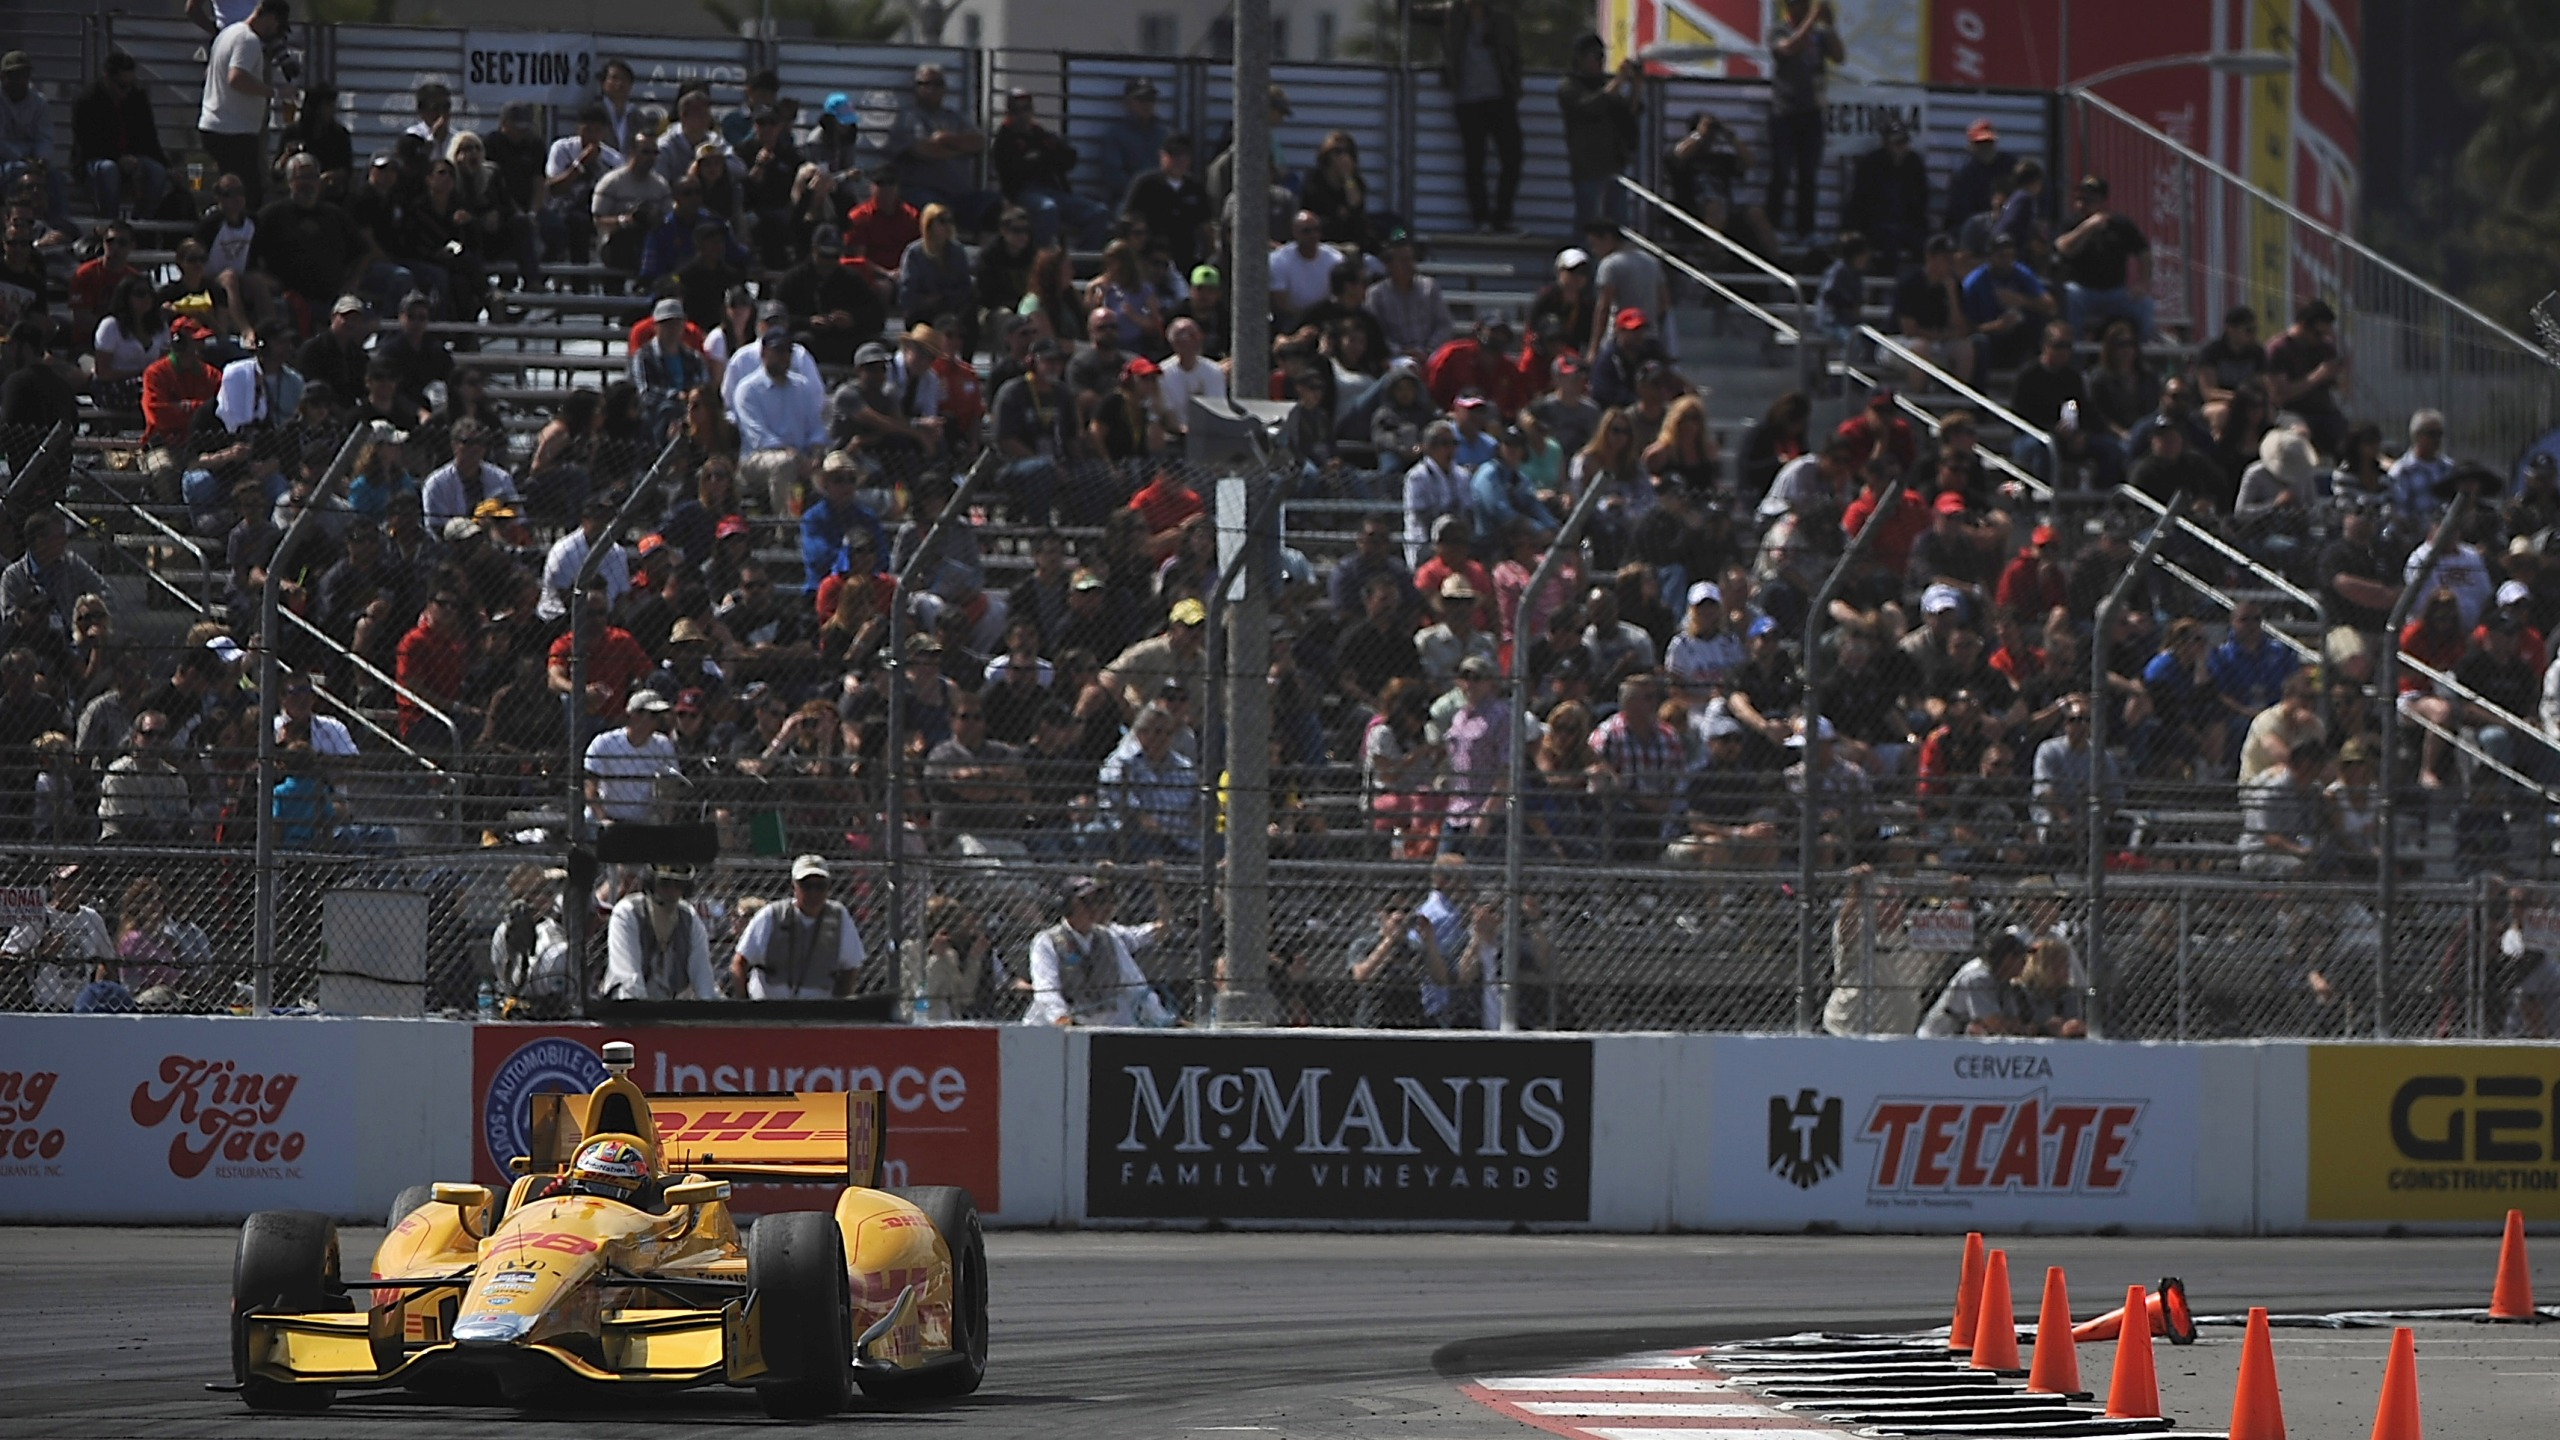 This April 13, 2014 file photo shows a crowd watching during the Verizon IndyCar Series Toyota Grand Prix of Long Beach. (Jonathan Moore/Getty Images)